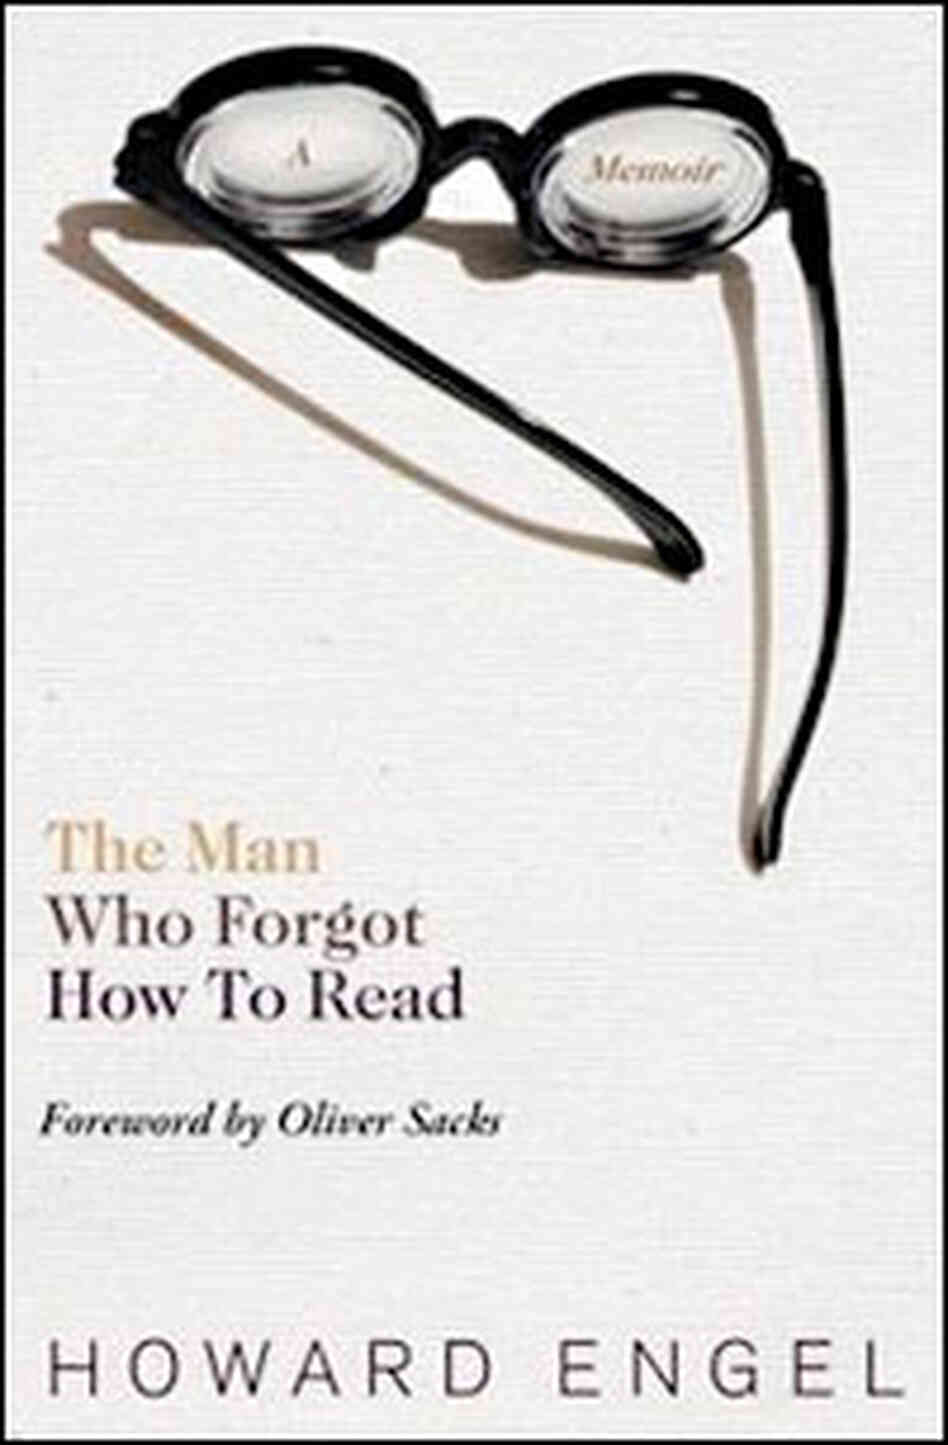 Man Who Forgot How To Read Book Cover, Howard Engel